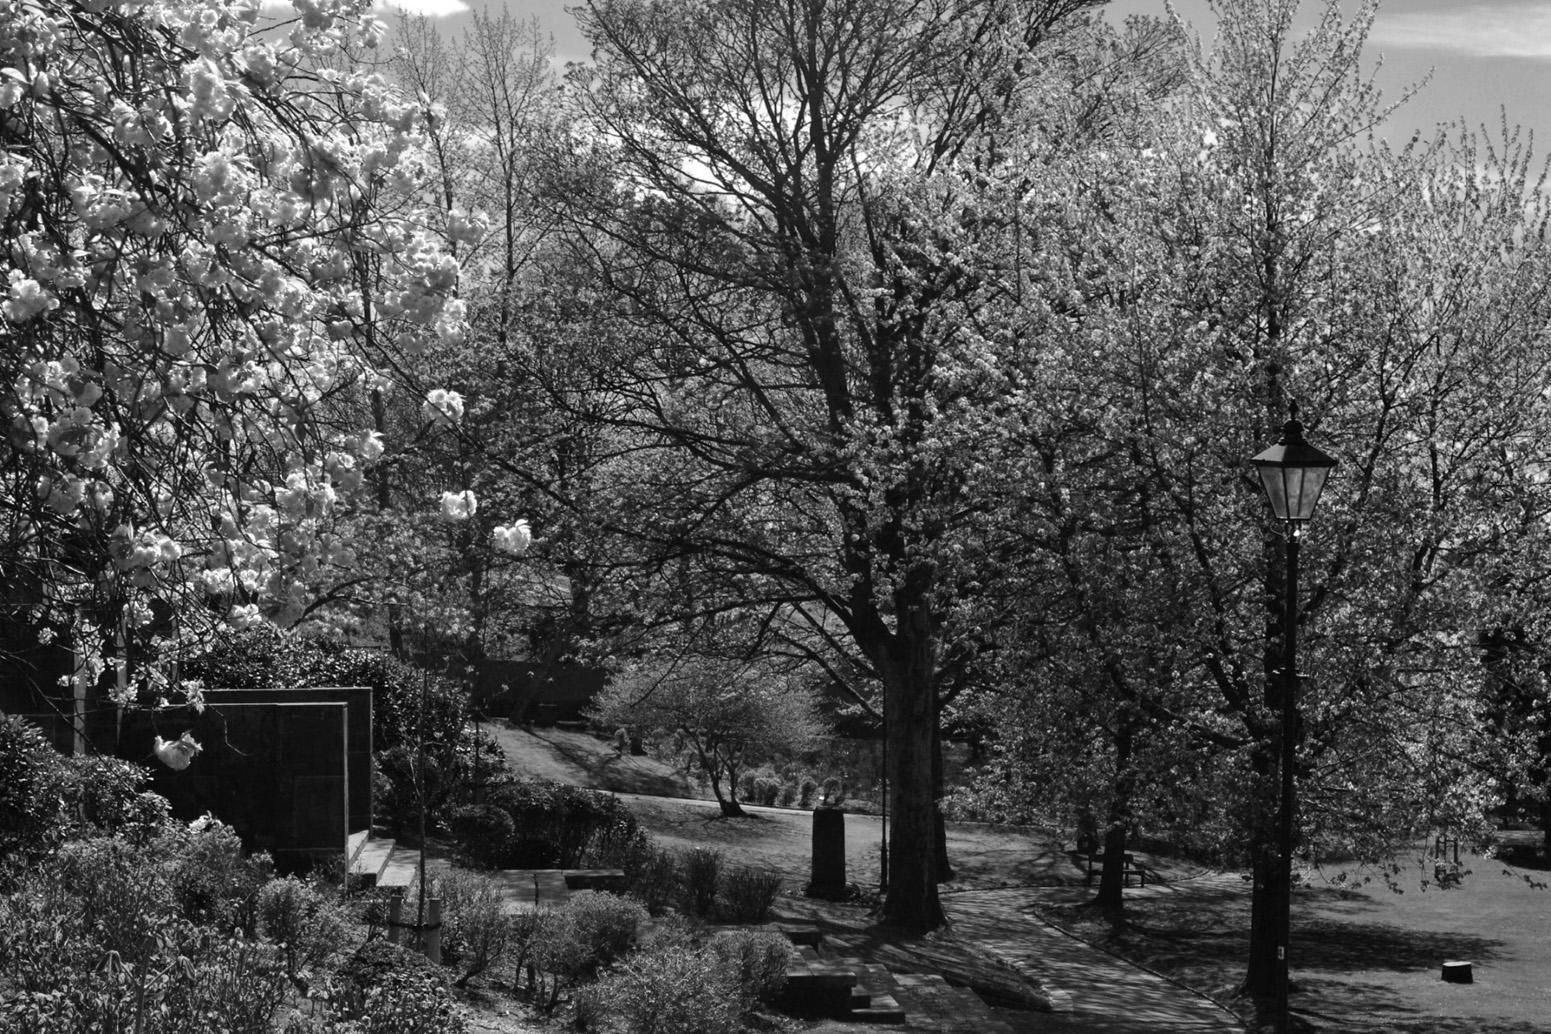 Edgar Wood Exedra in Jubilee Park in black & white